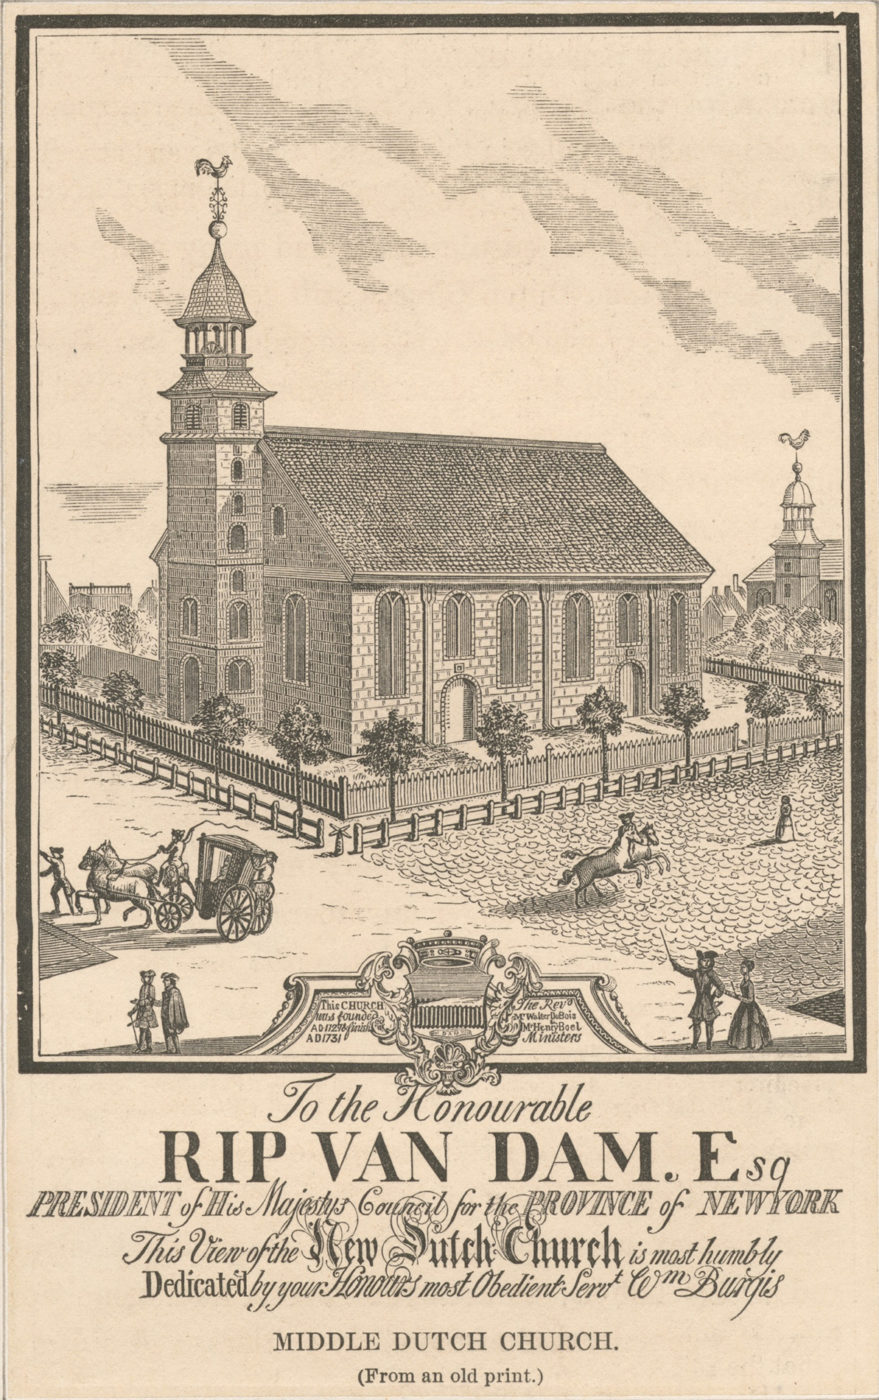 The Middle Dutch Church on Nassau Street in the 1700s